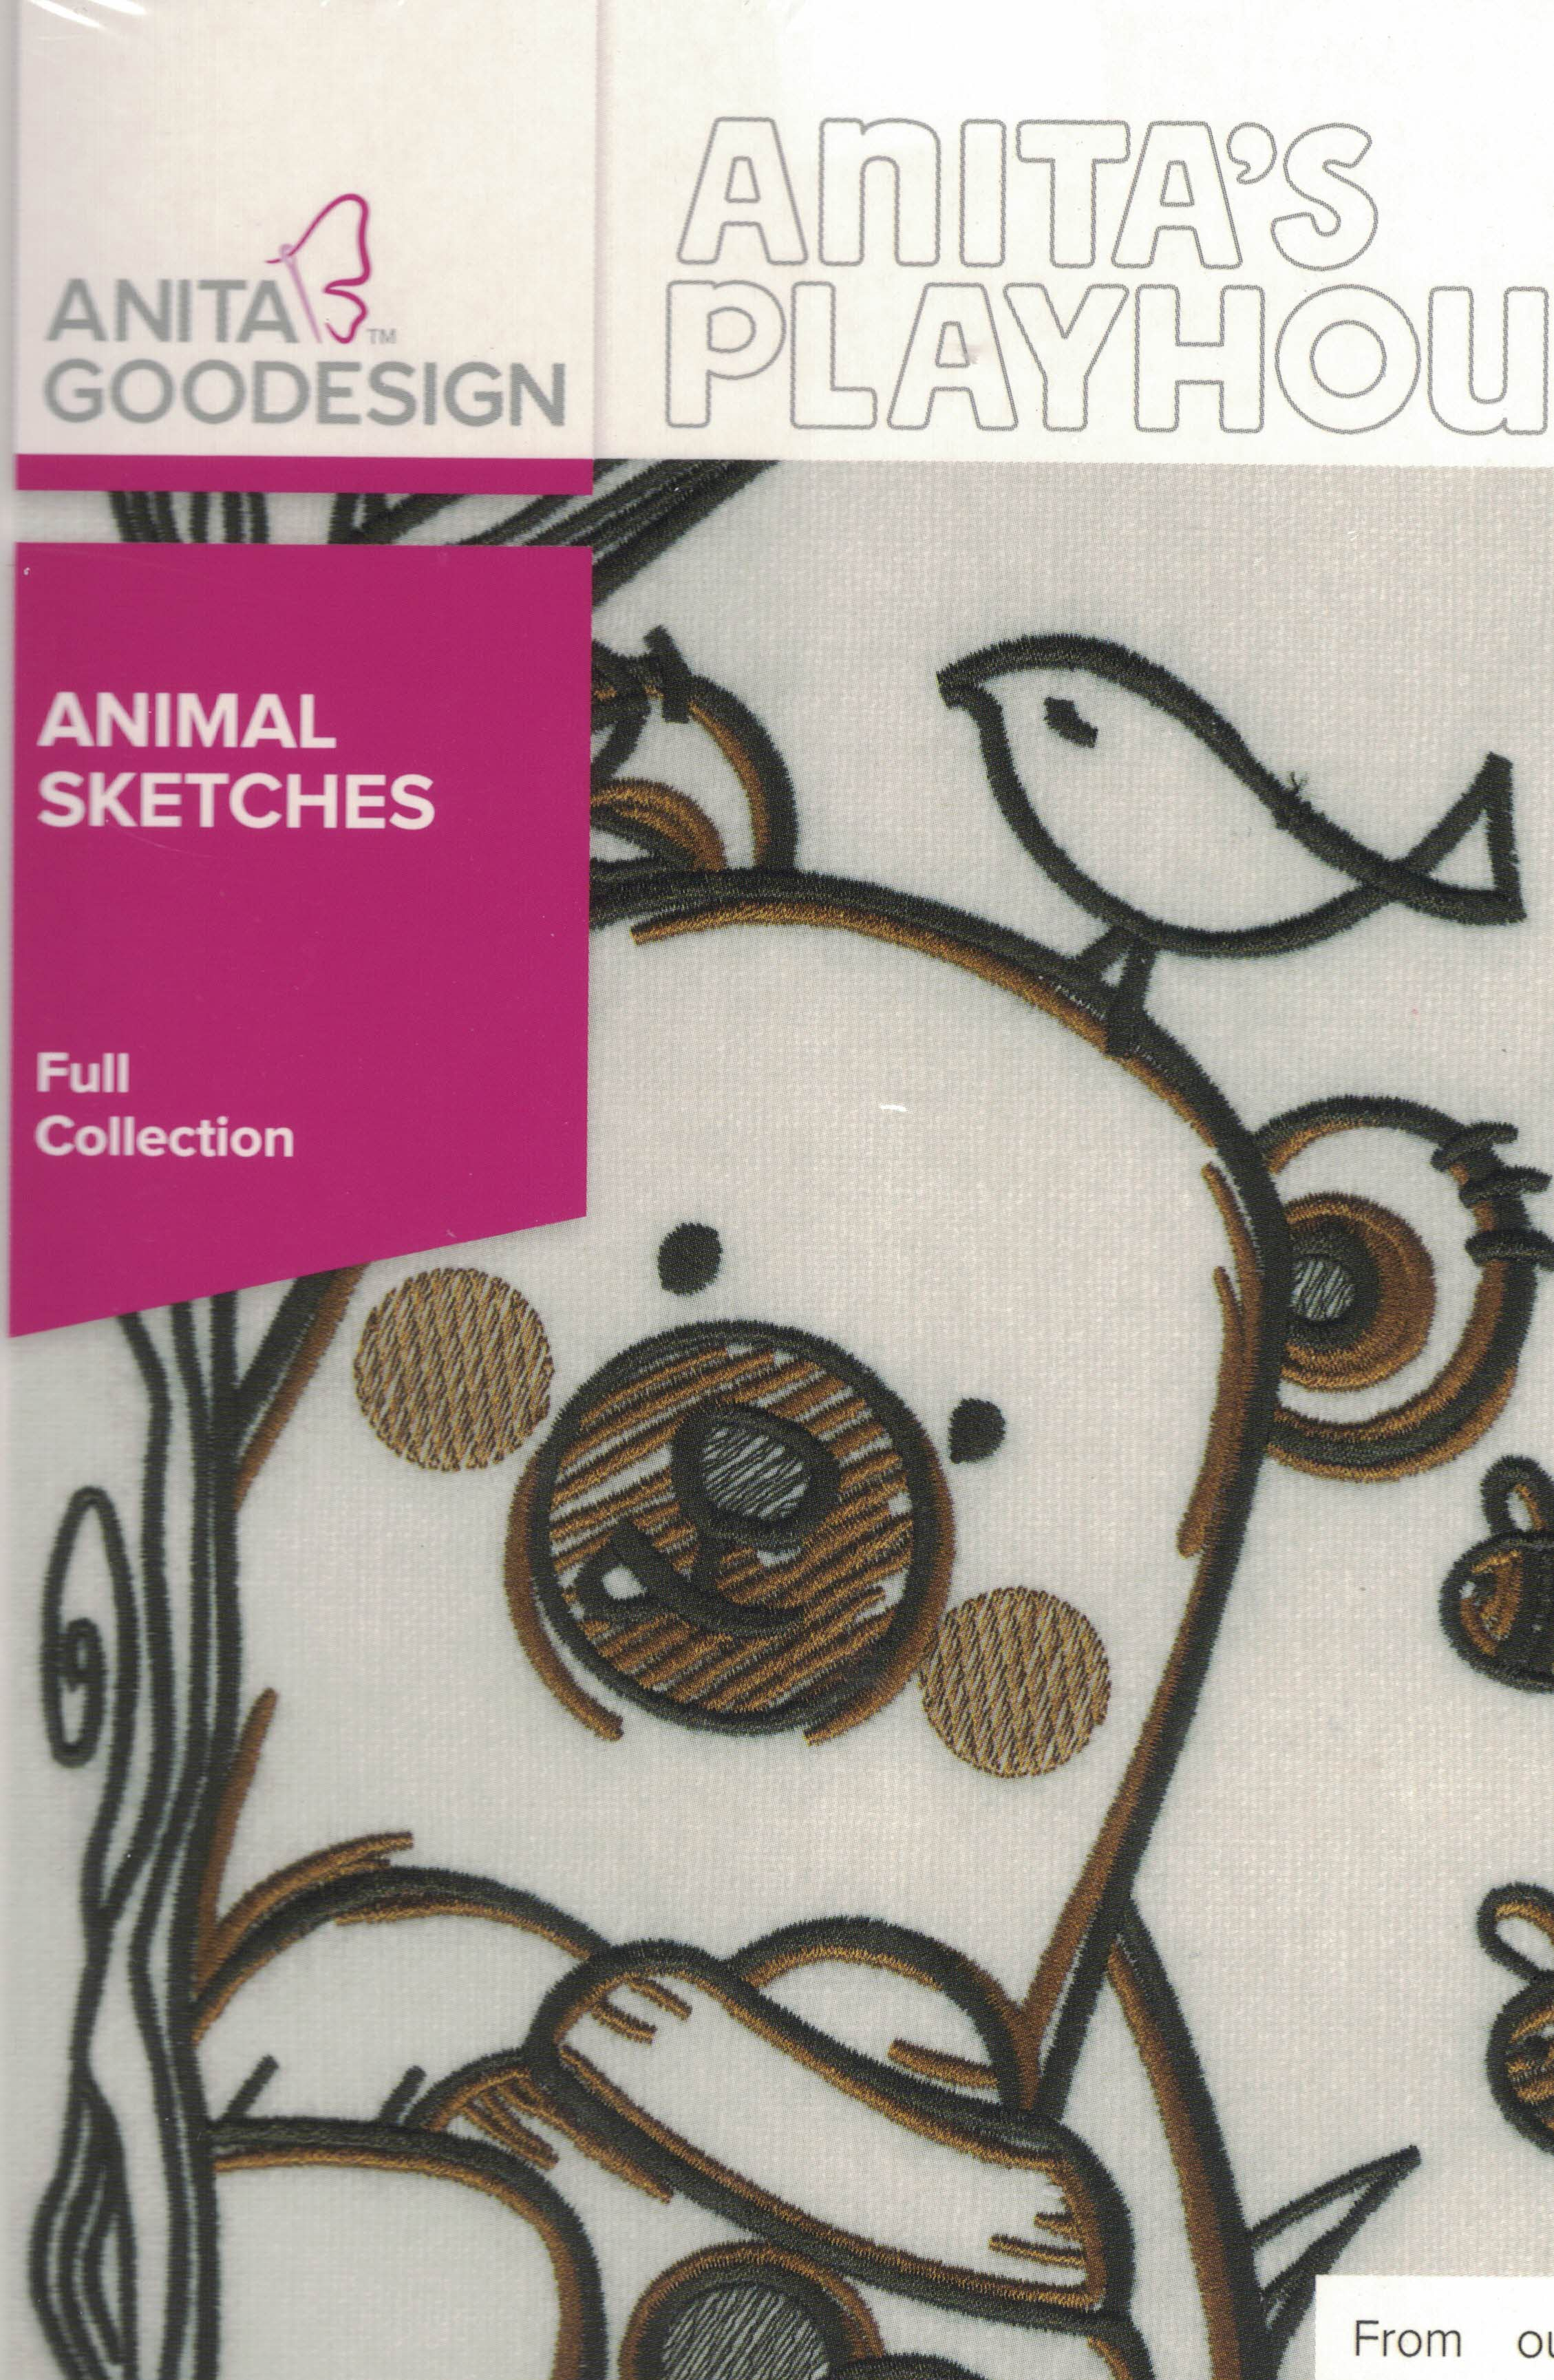 Animal Sketches CD Full Collection 284GHD